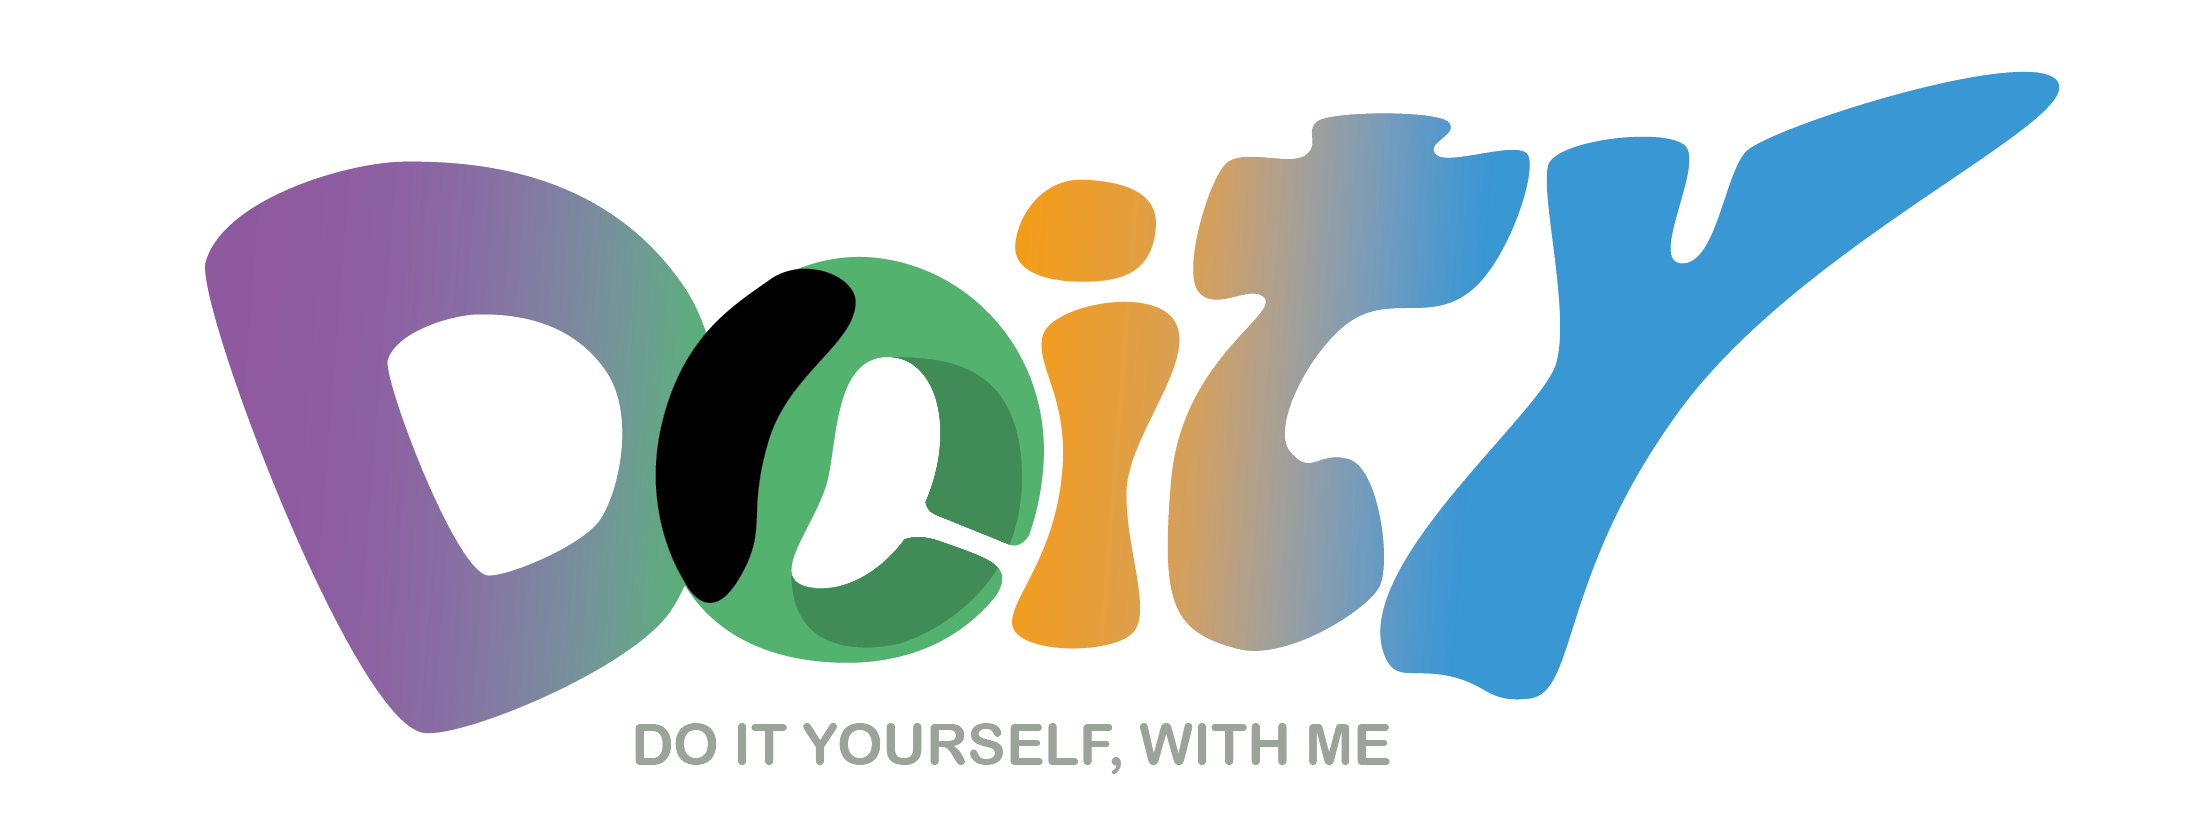 Doity – Do it Yourself, with me